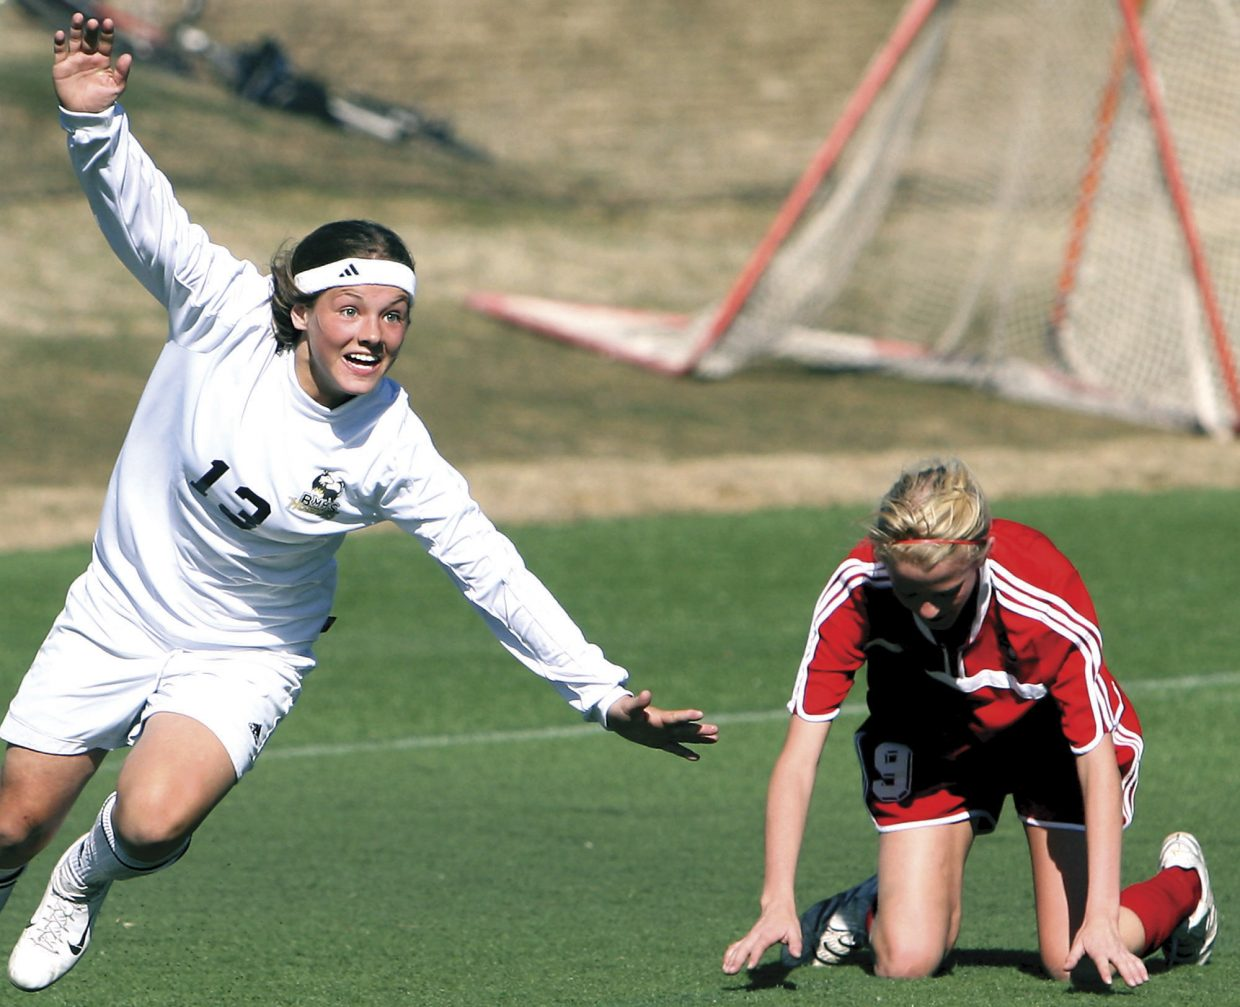 Lizzie Seibert celebrates after scoring the only goal of the game in a 1-0 win against Steamboat Springs on April 15, 2008. Battle Mountain girls soccer went 15-0 that year, the only undefeated season for the Lady Huskies, and, naturally, the Sailors were Battle Mountain's biggest obstacle to that mark.